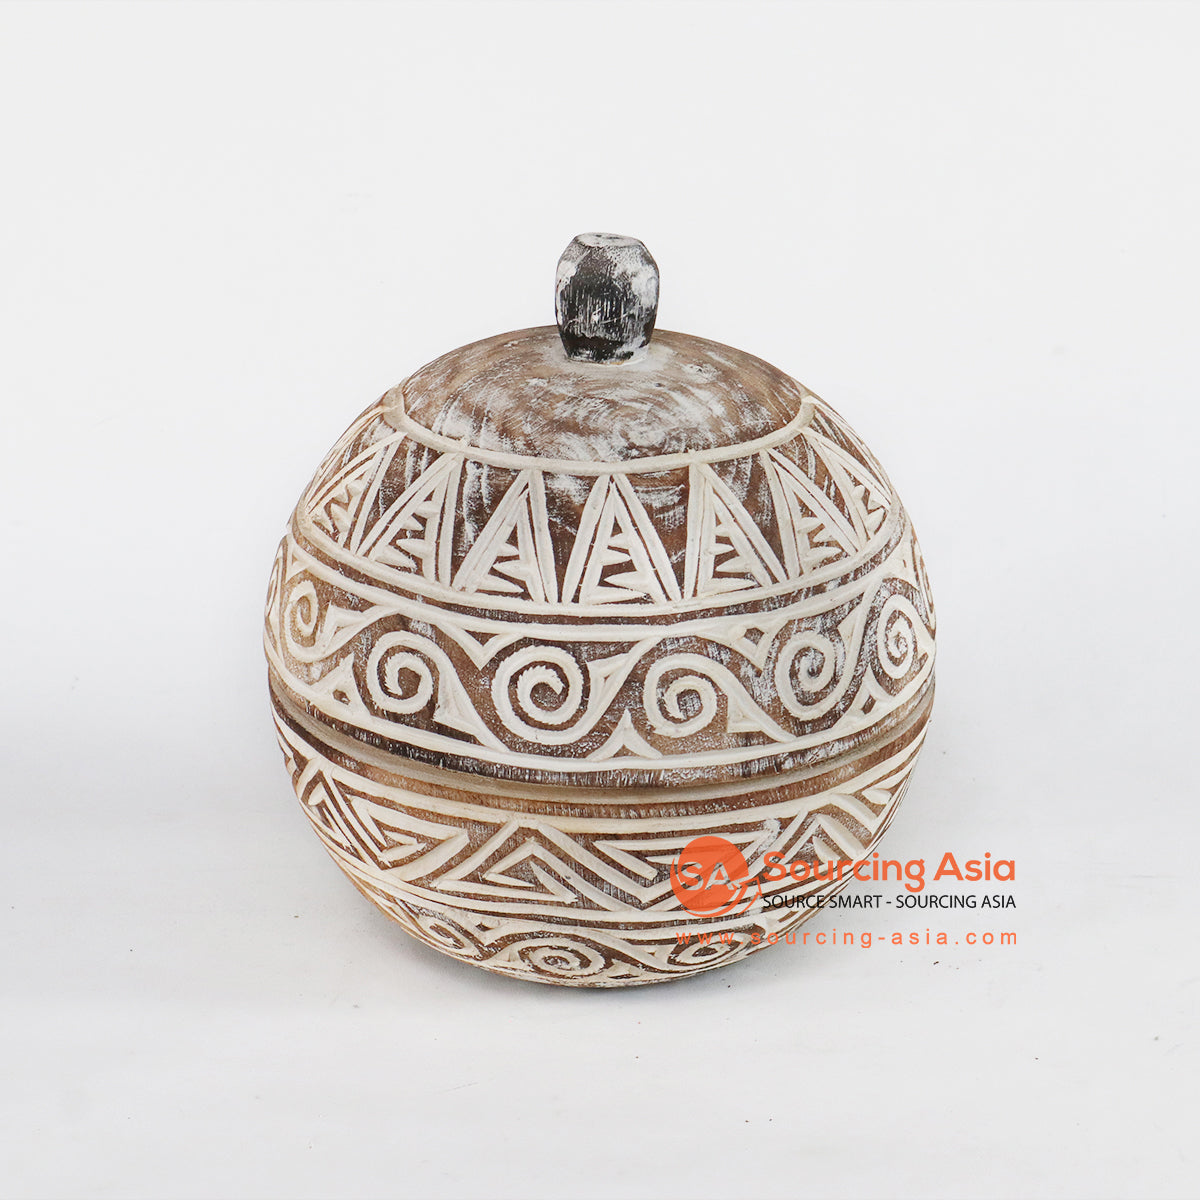 TKNC008 ETHNIC TRIBAL WOODEN BOWL WITH LID